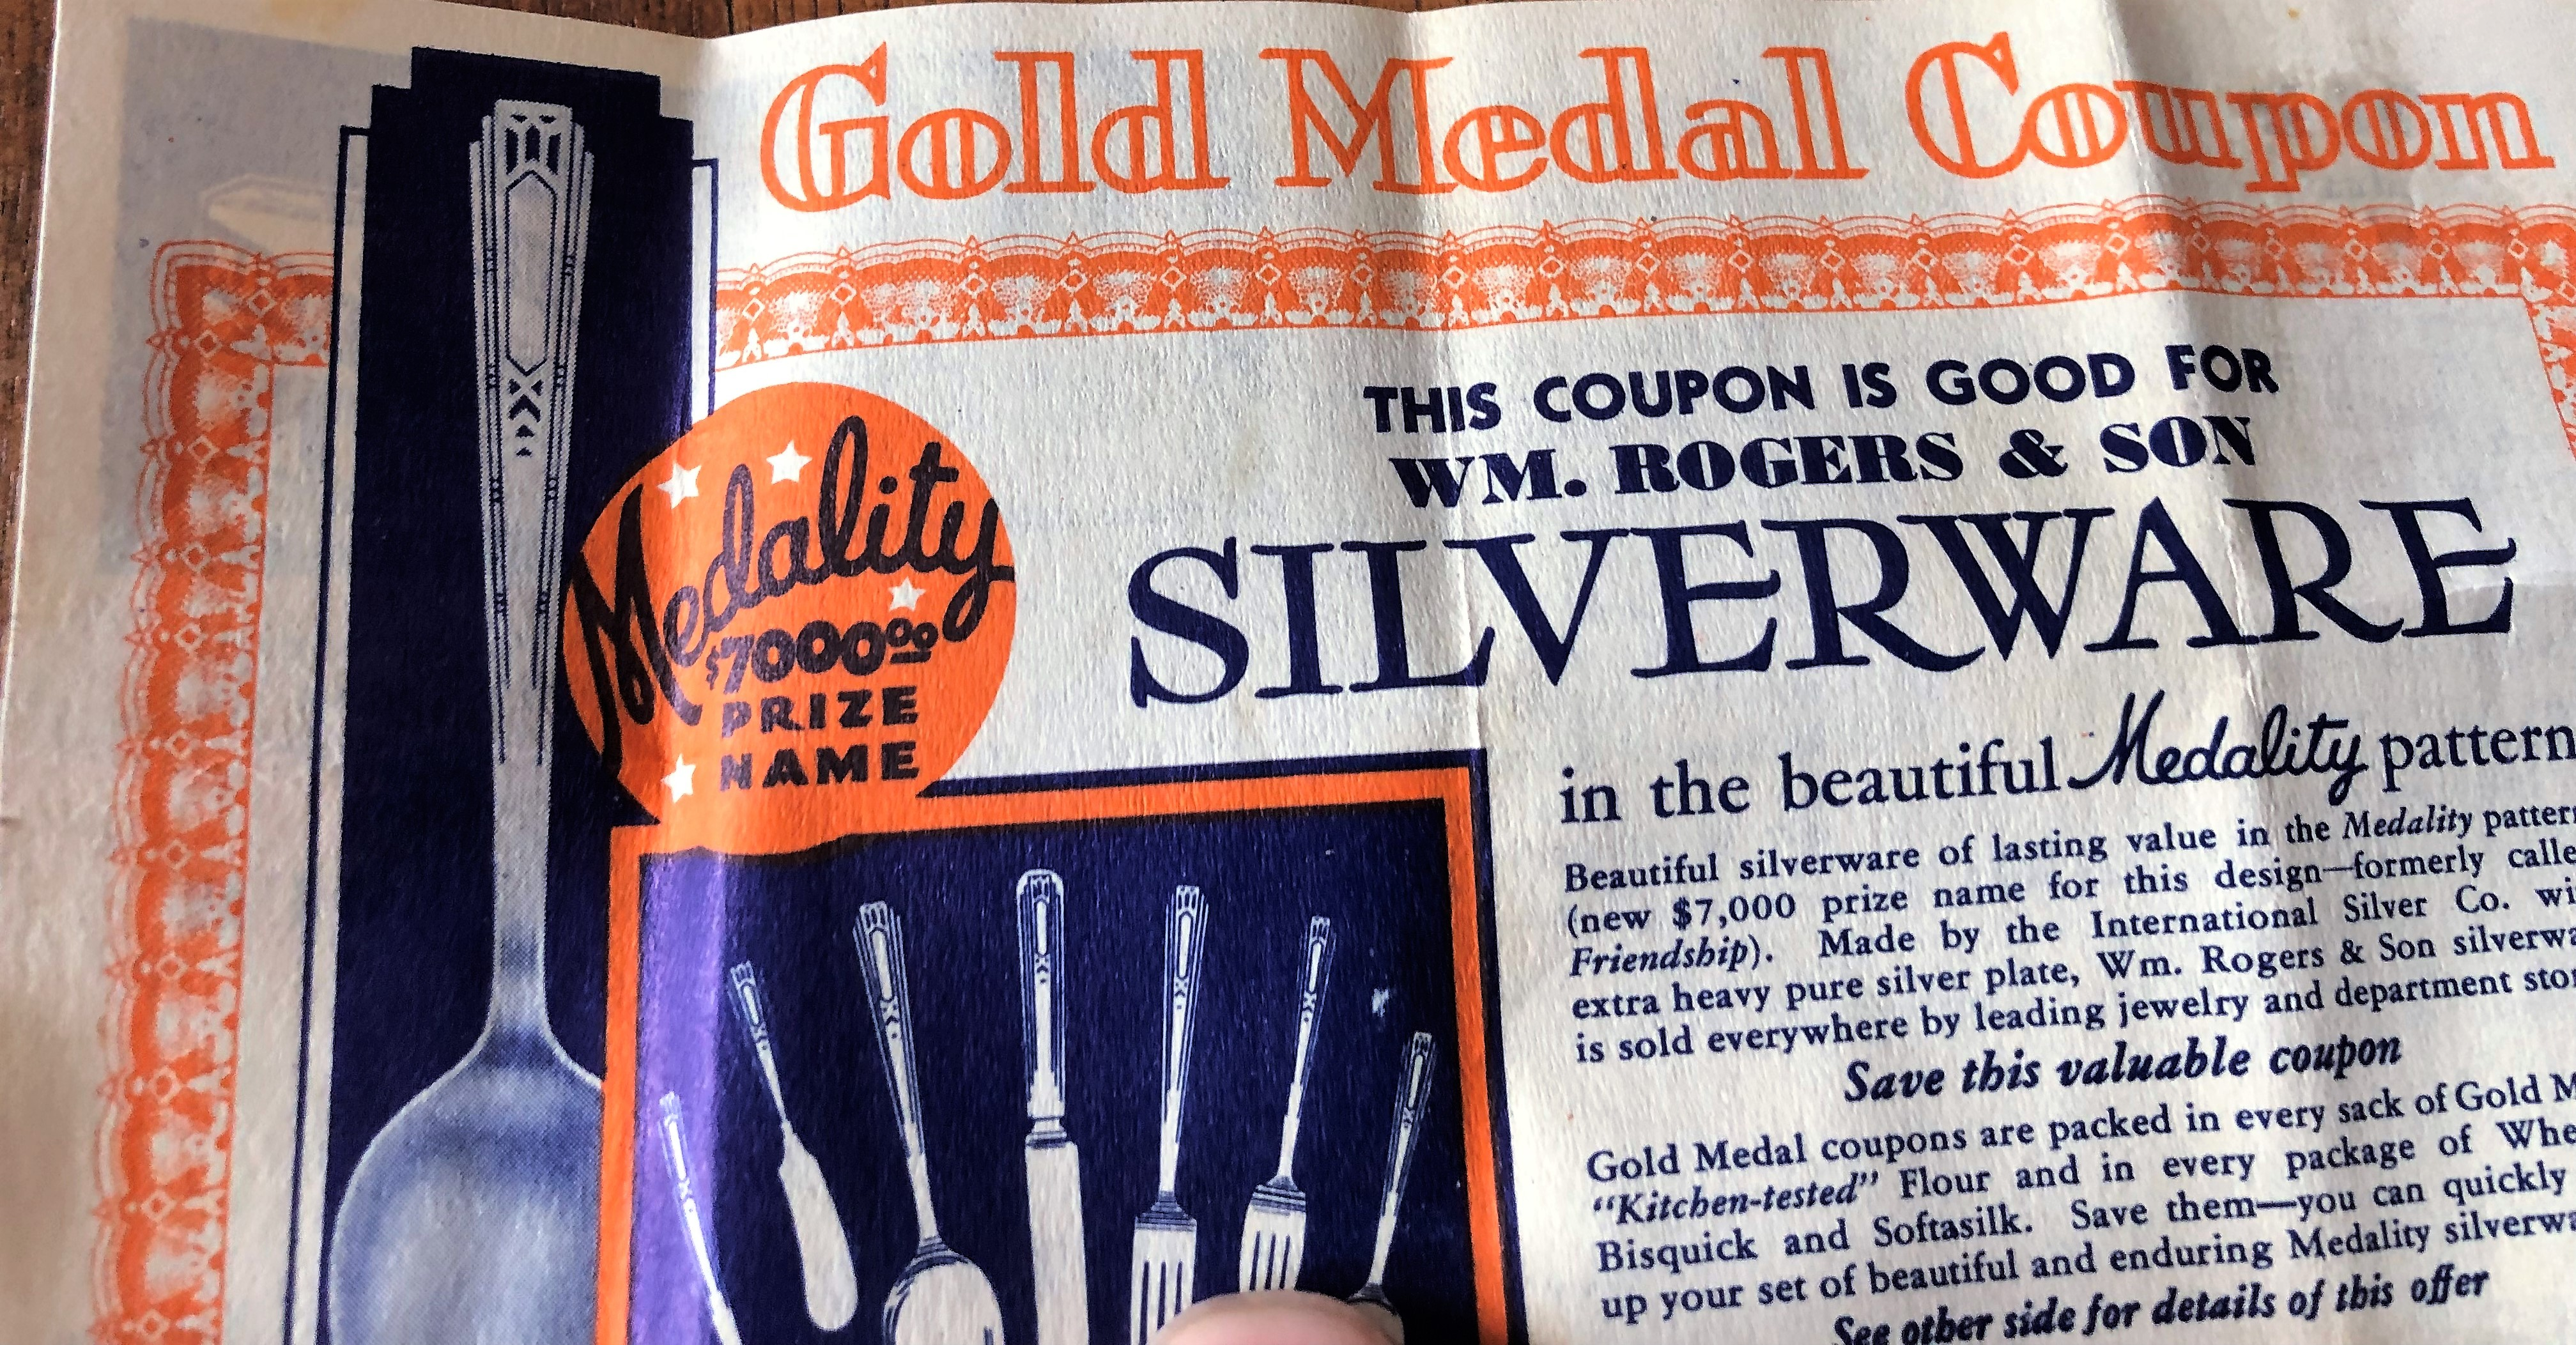 A coupon from Gold Medal Flour